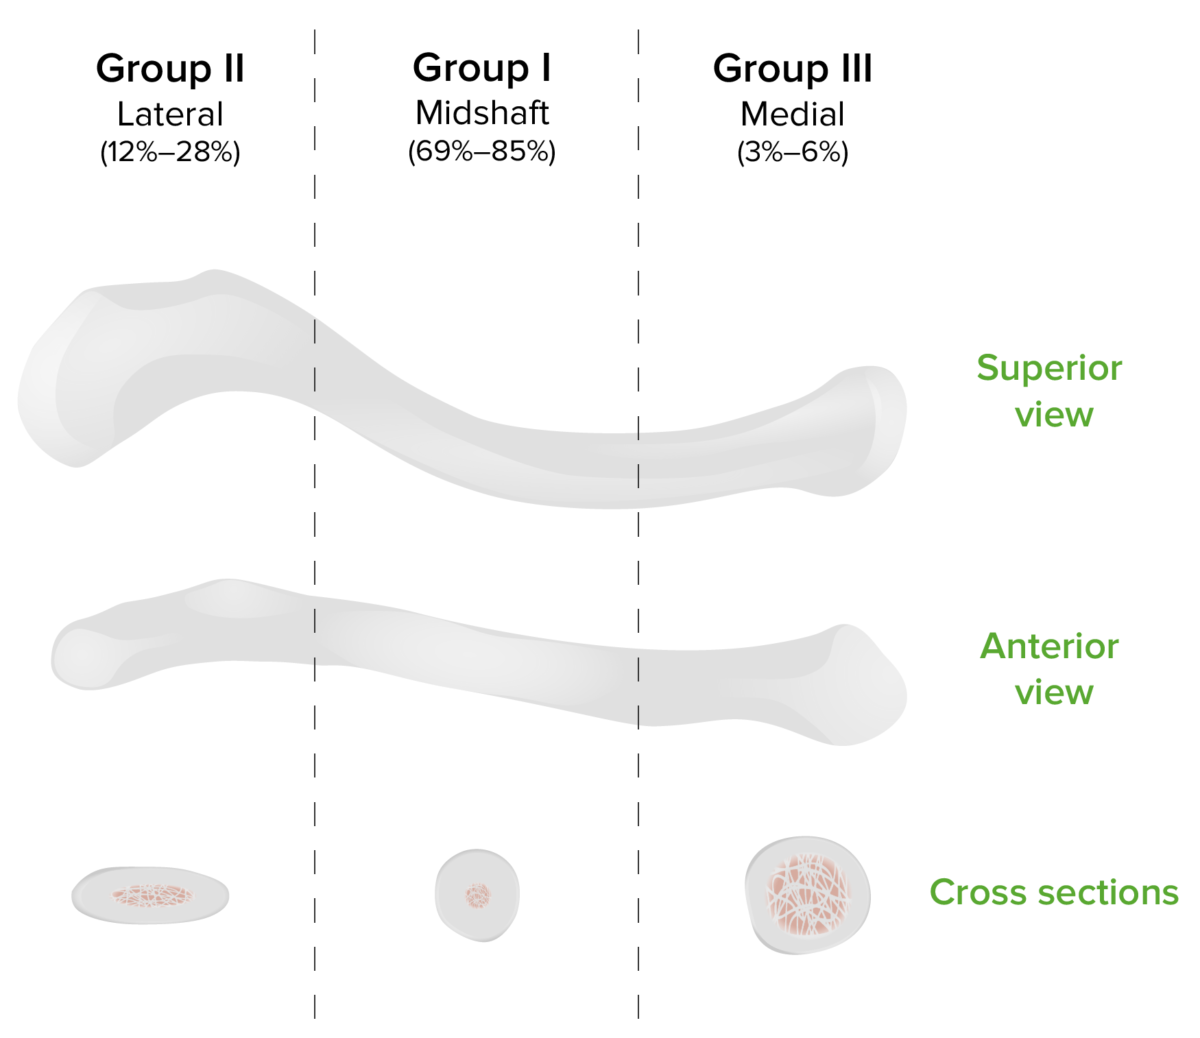 Allman classification of fractures